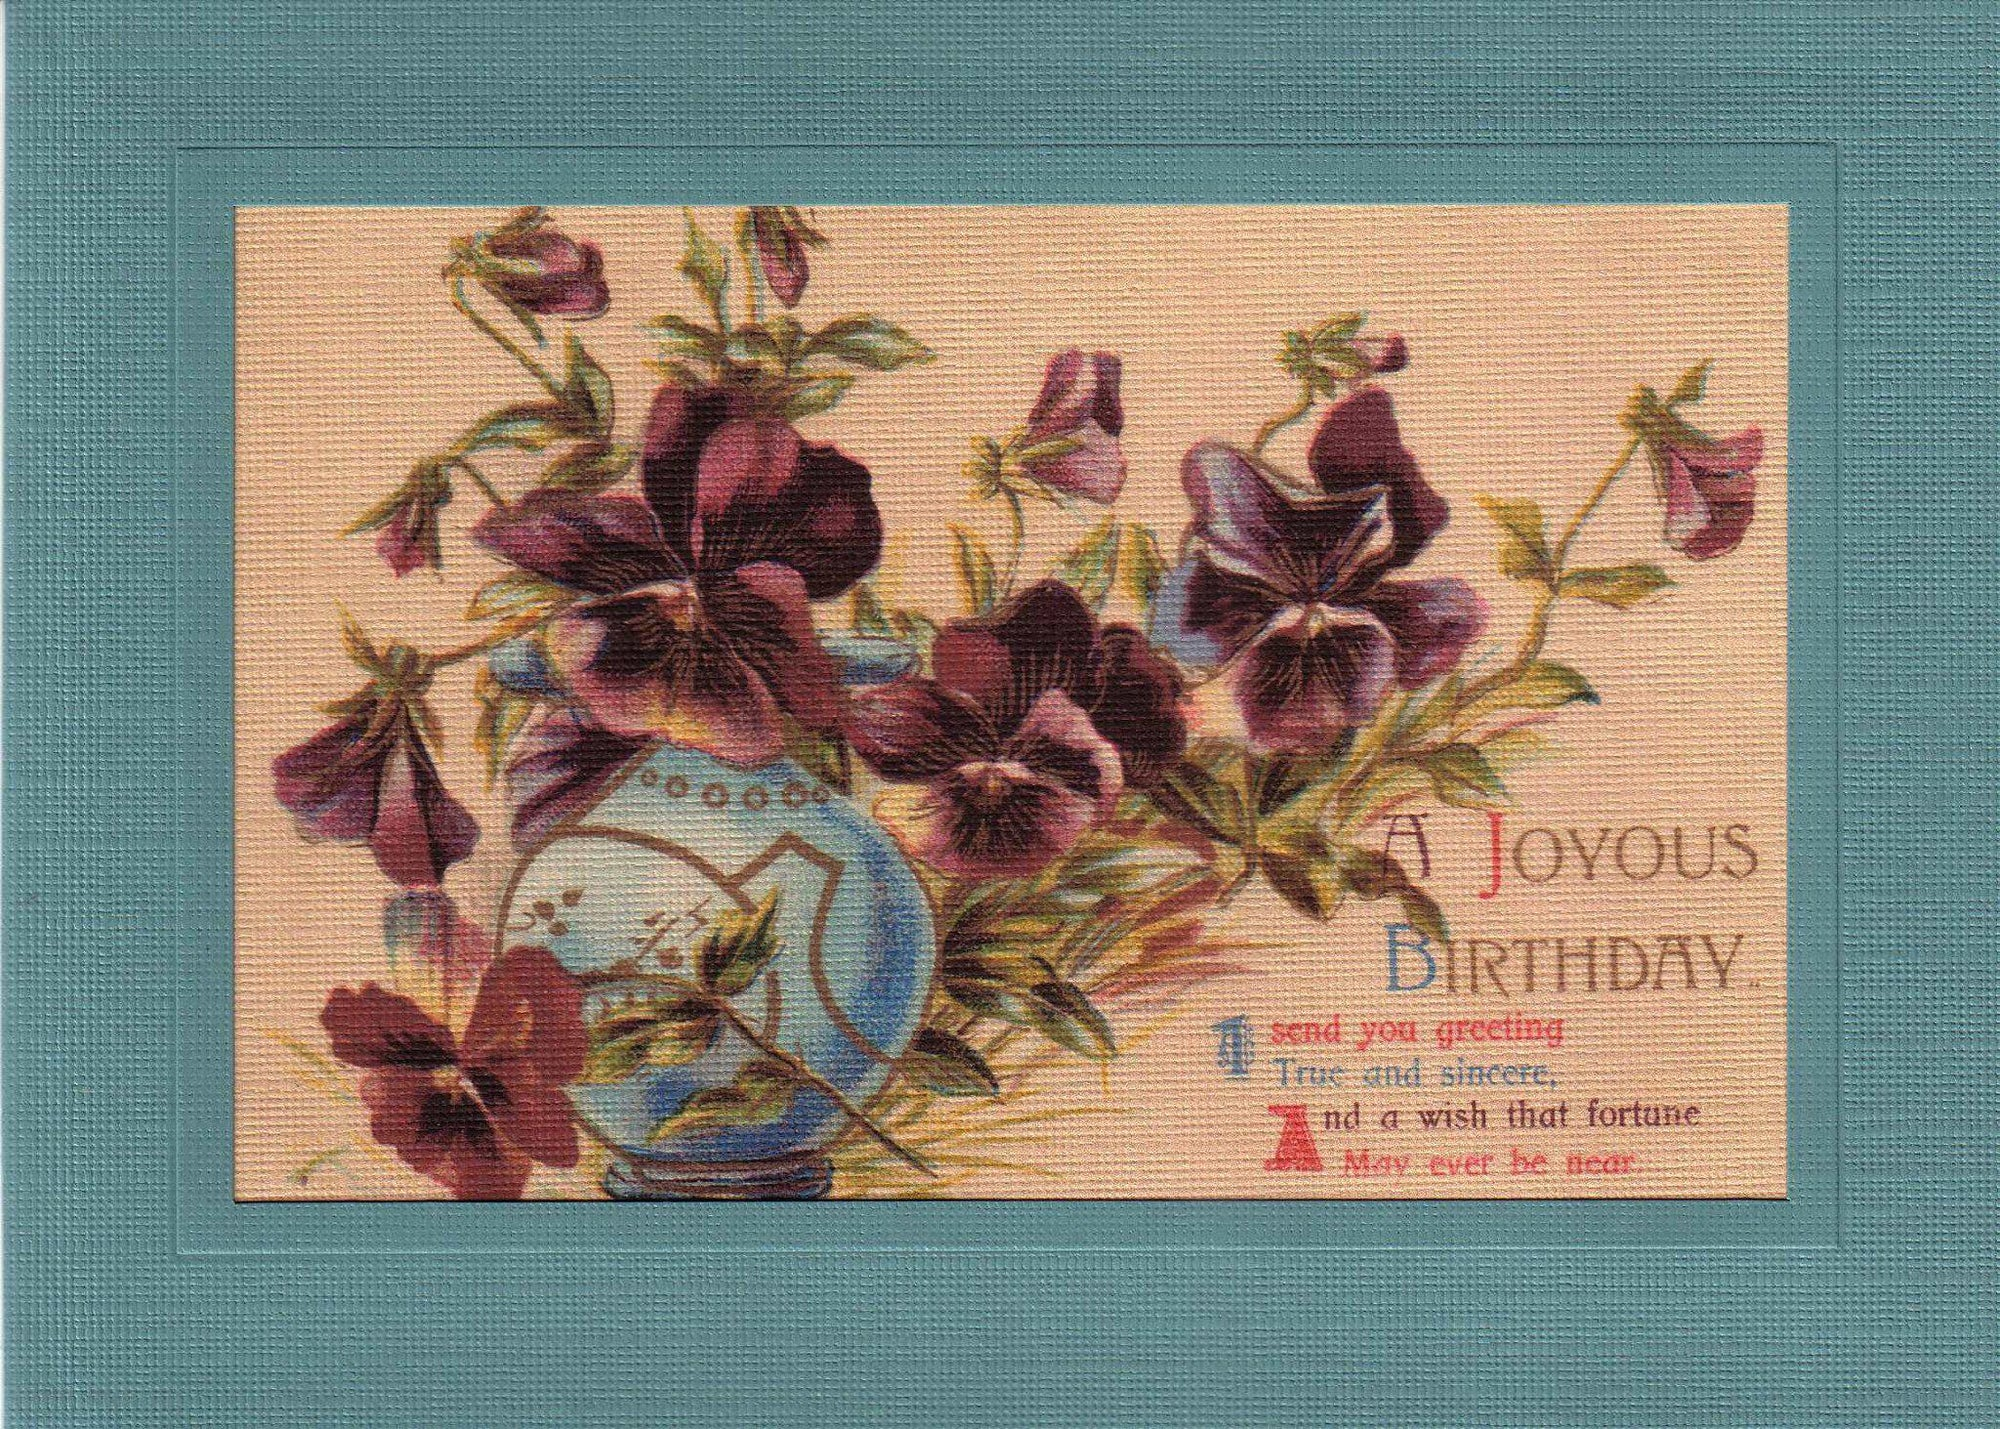 Joyous Birthday-Greetings from the Past-Plymouth Cards